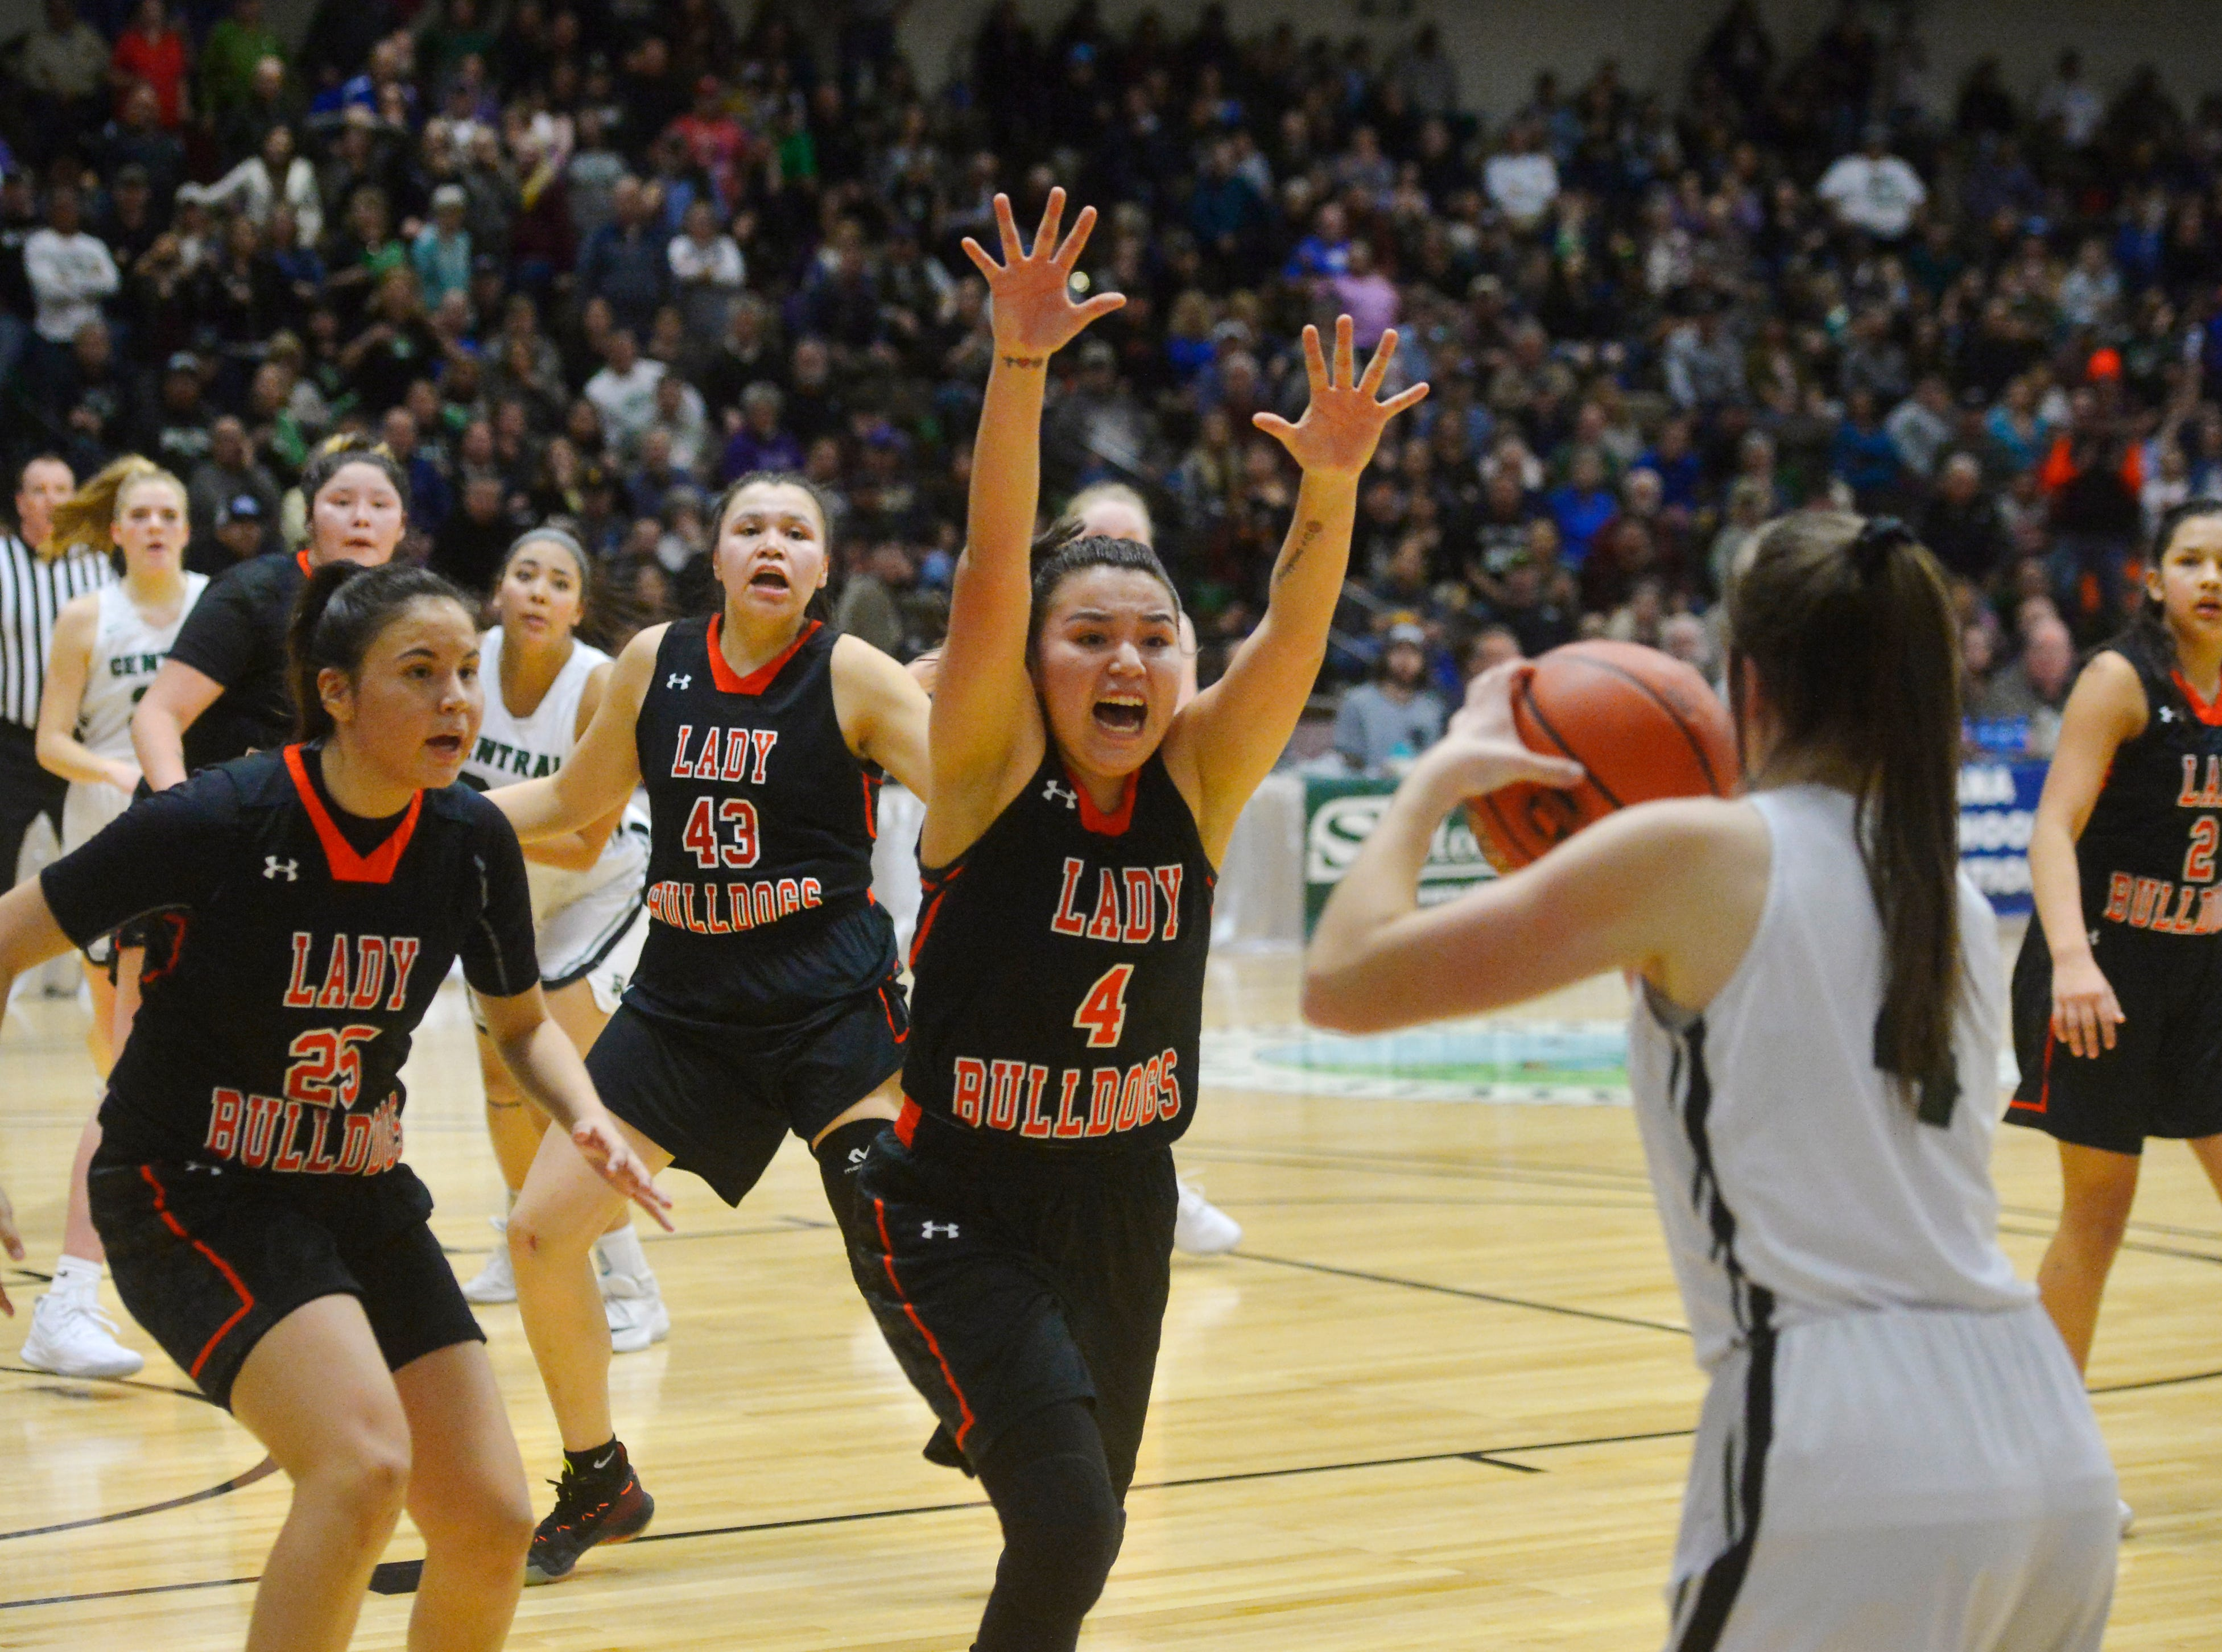 Hardin's Mashaya Alden attempts to distract Billings Central's Solei Elletson's on a last second shot during the girls semifinal game of the State Class A Basketball Tournament in the Four Seasons Arena, Friday.